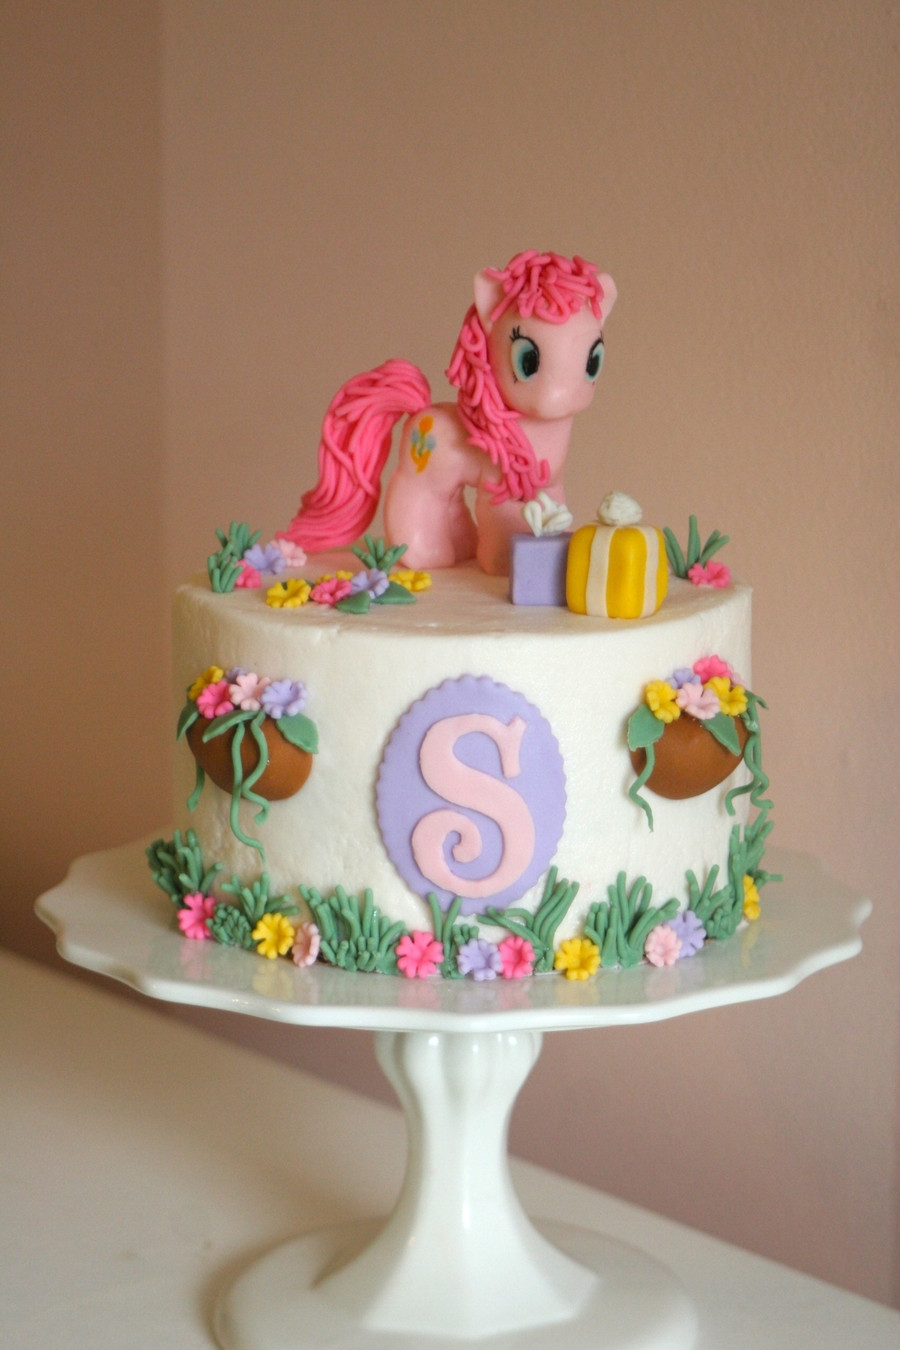 Best ideas about My Little Pony Birthday Cake . Save or Pin My Little Pony Cake With Pinkie Pie CakeCentral Now.